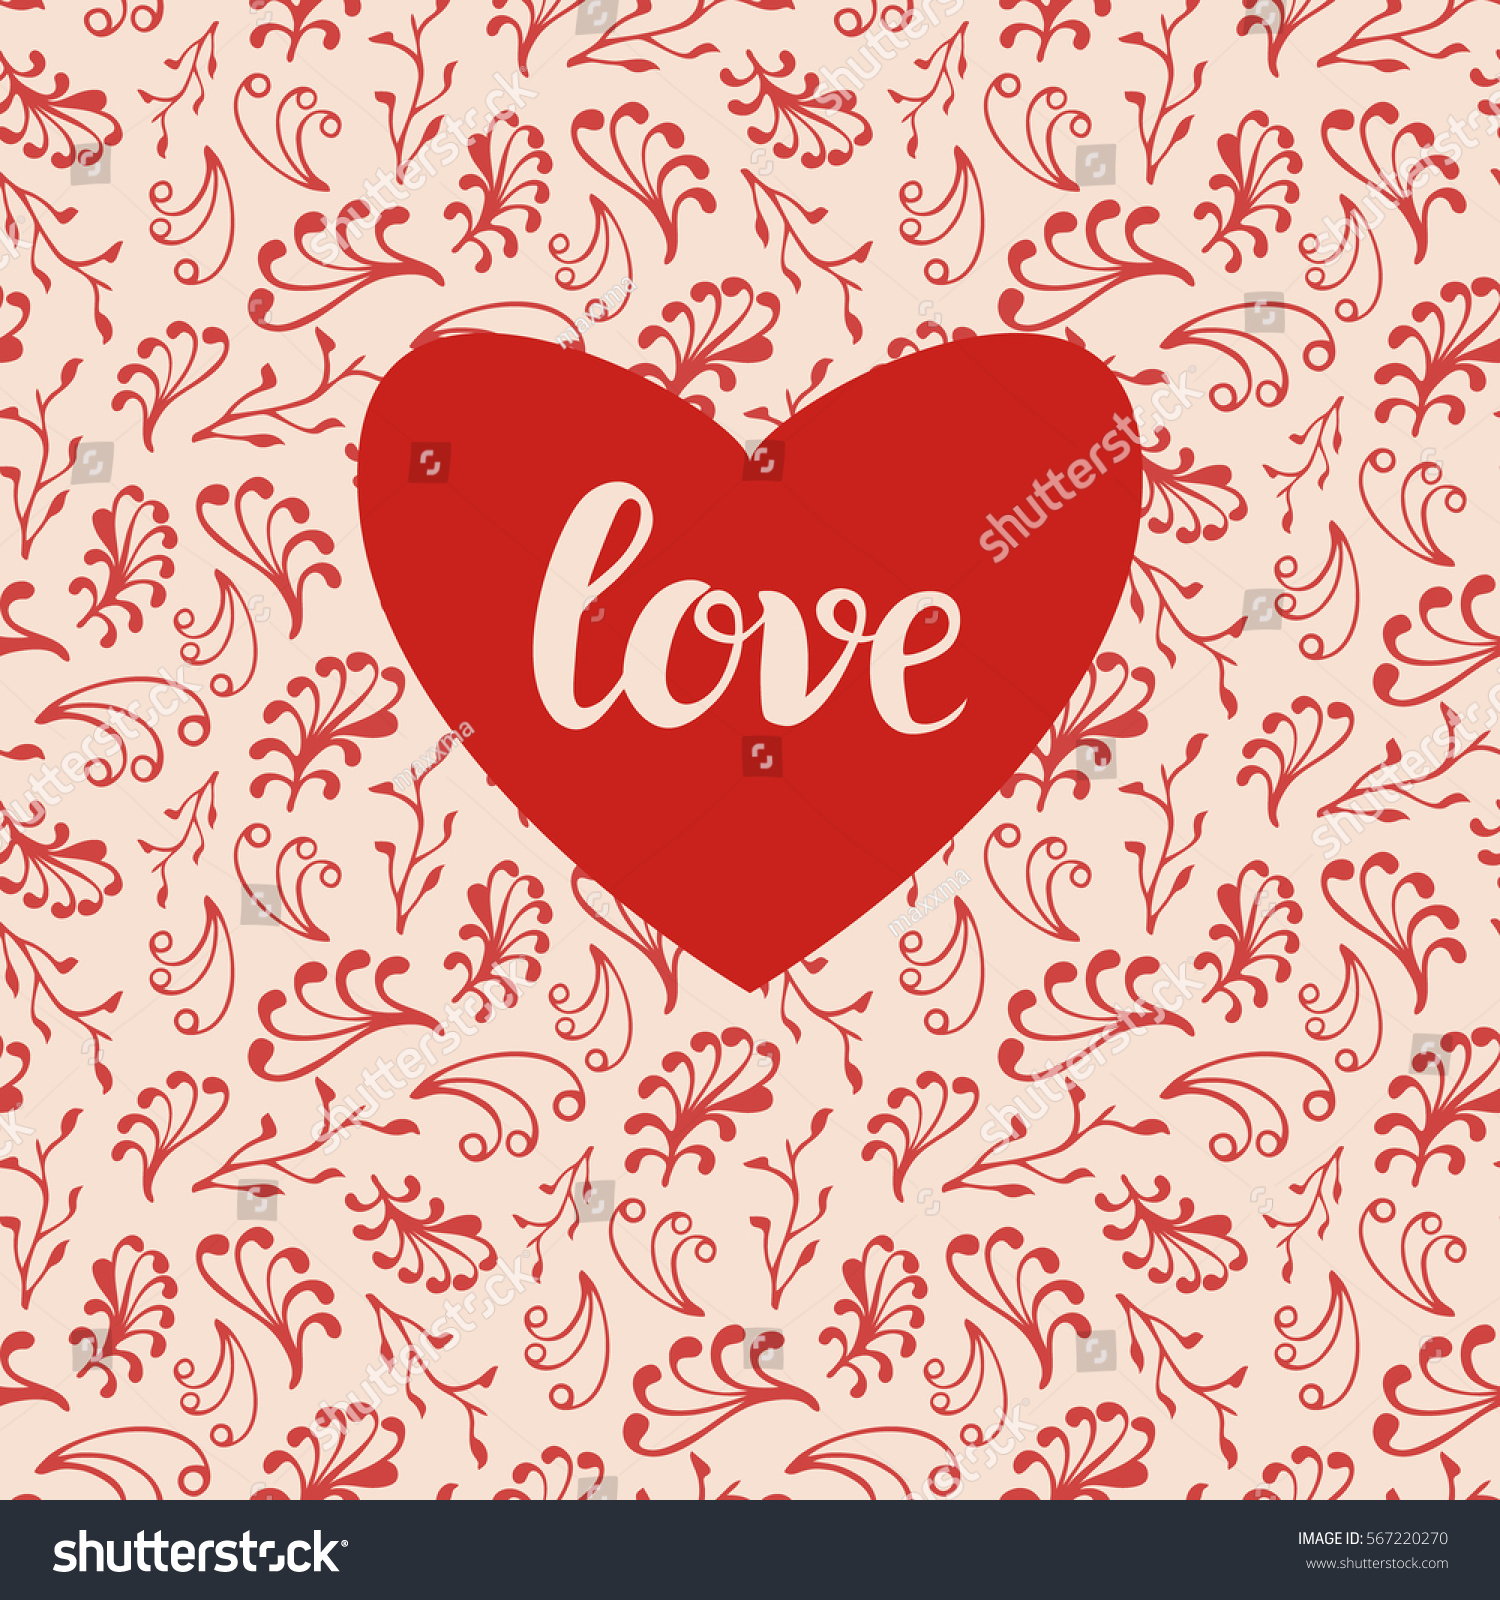 Background Valentines Day Card Wedding Invitation Stock Vector HD ...